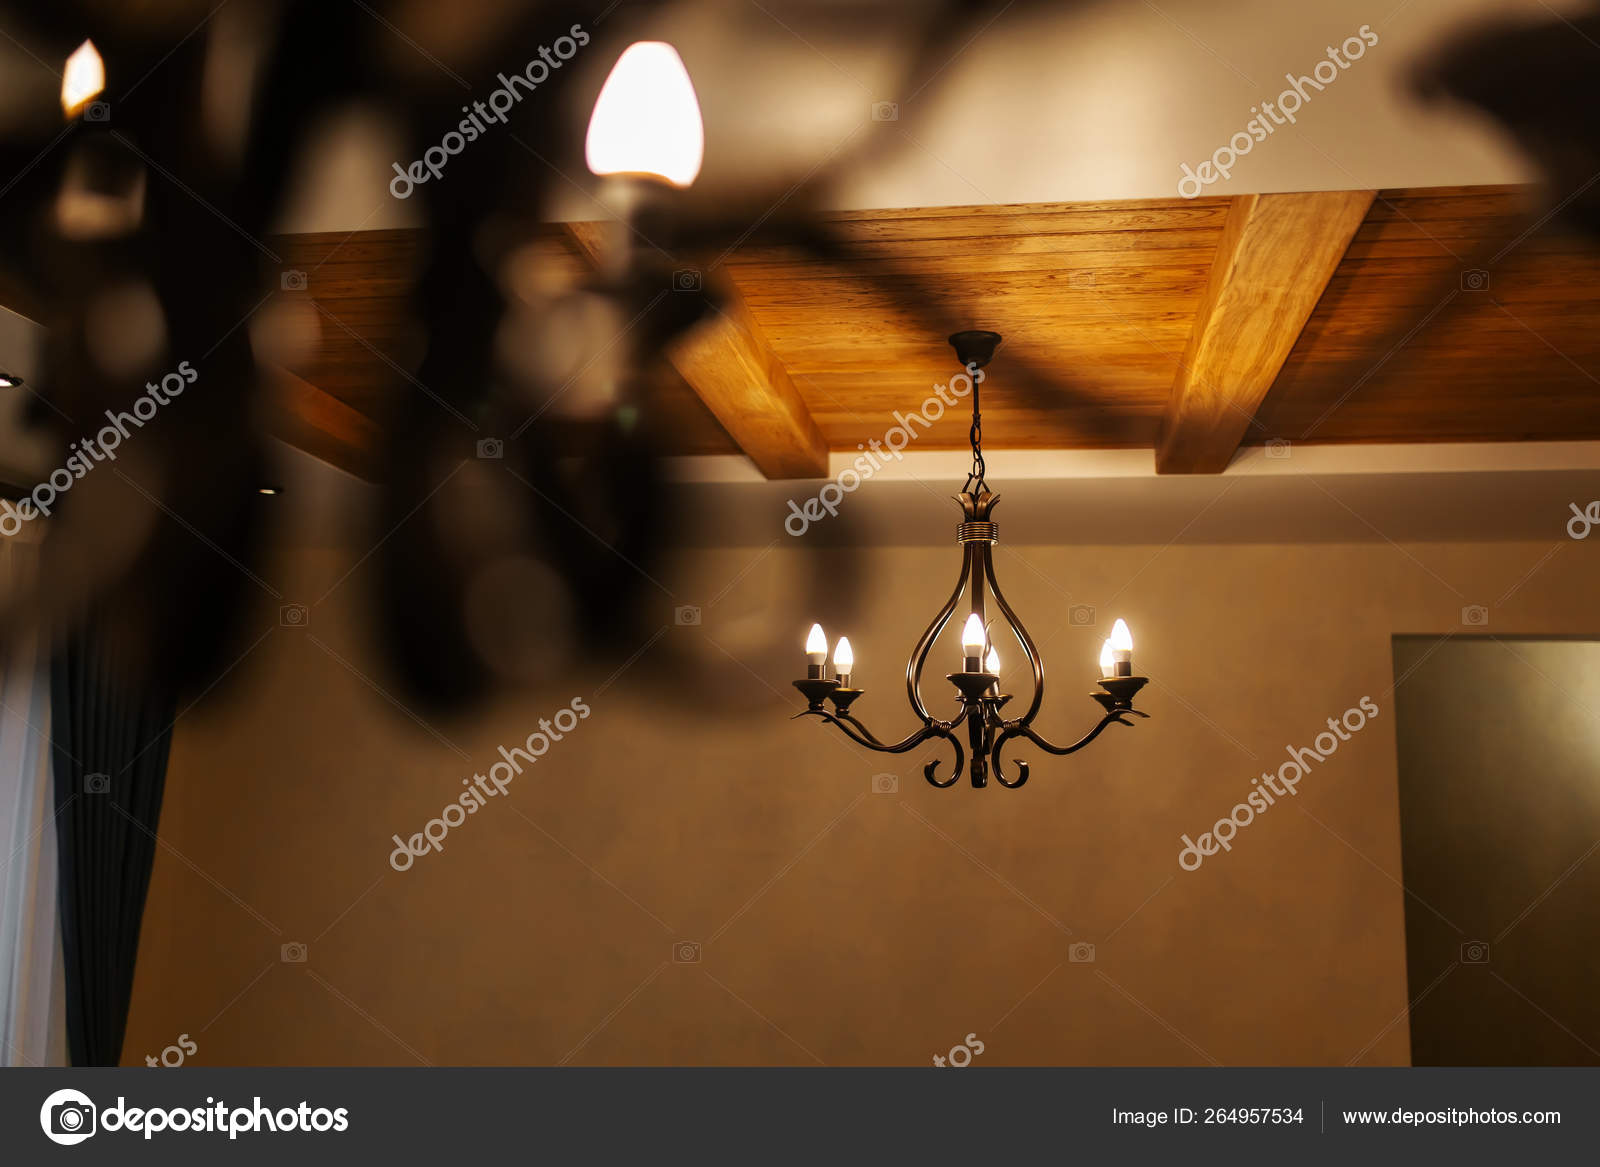 Contemporary Chandelier Is A Branched Ornamental Light Fixture Designed To Be Mounted On Ceilings Or Walls Vintage Chandelier Home Interior Stock Photo Image By C Andriymedvediuk 264957534